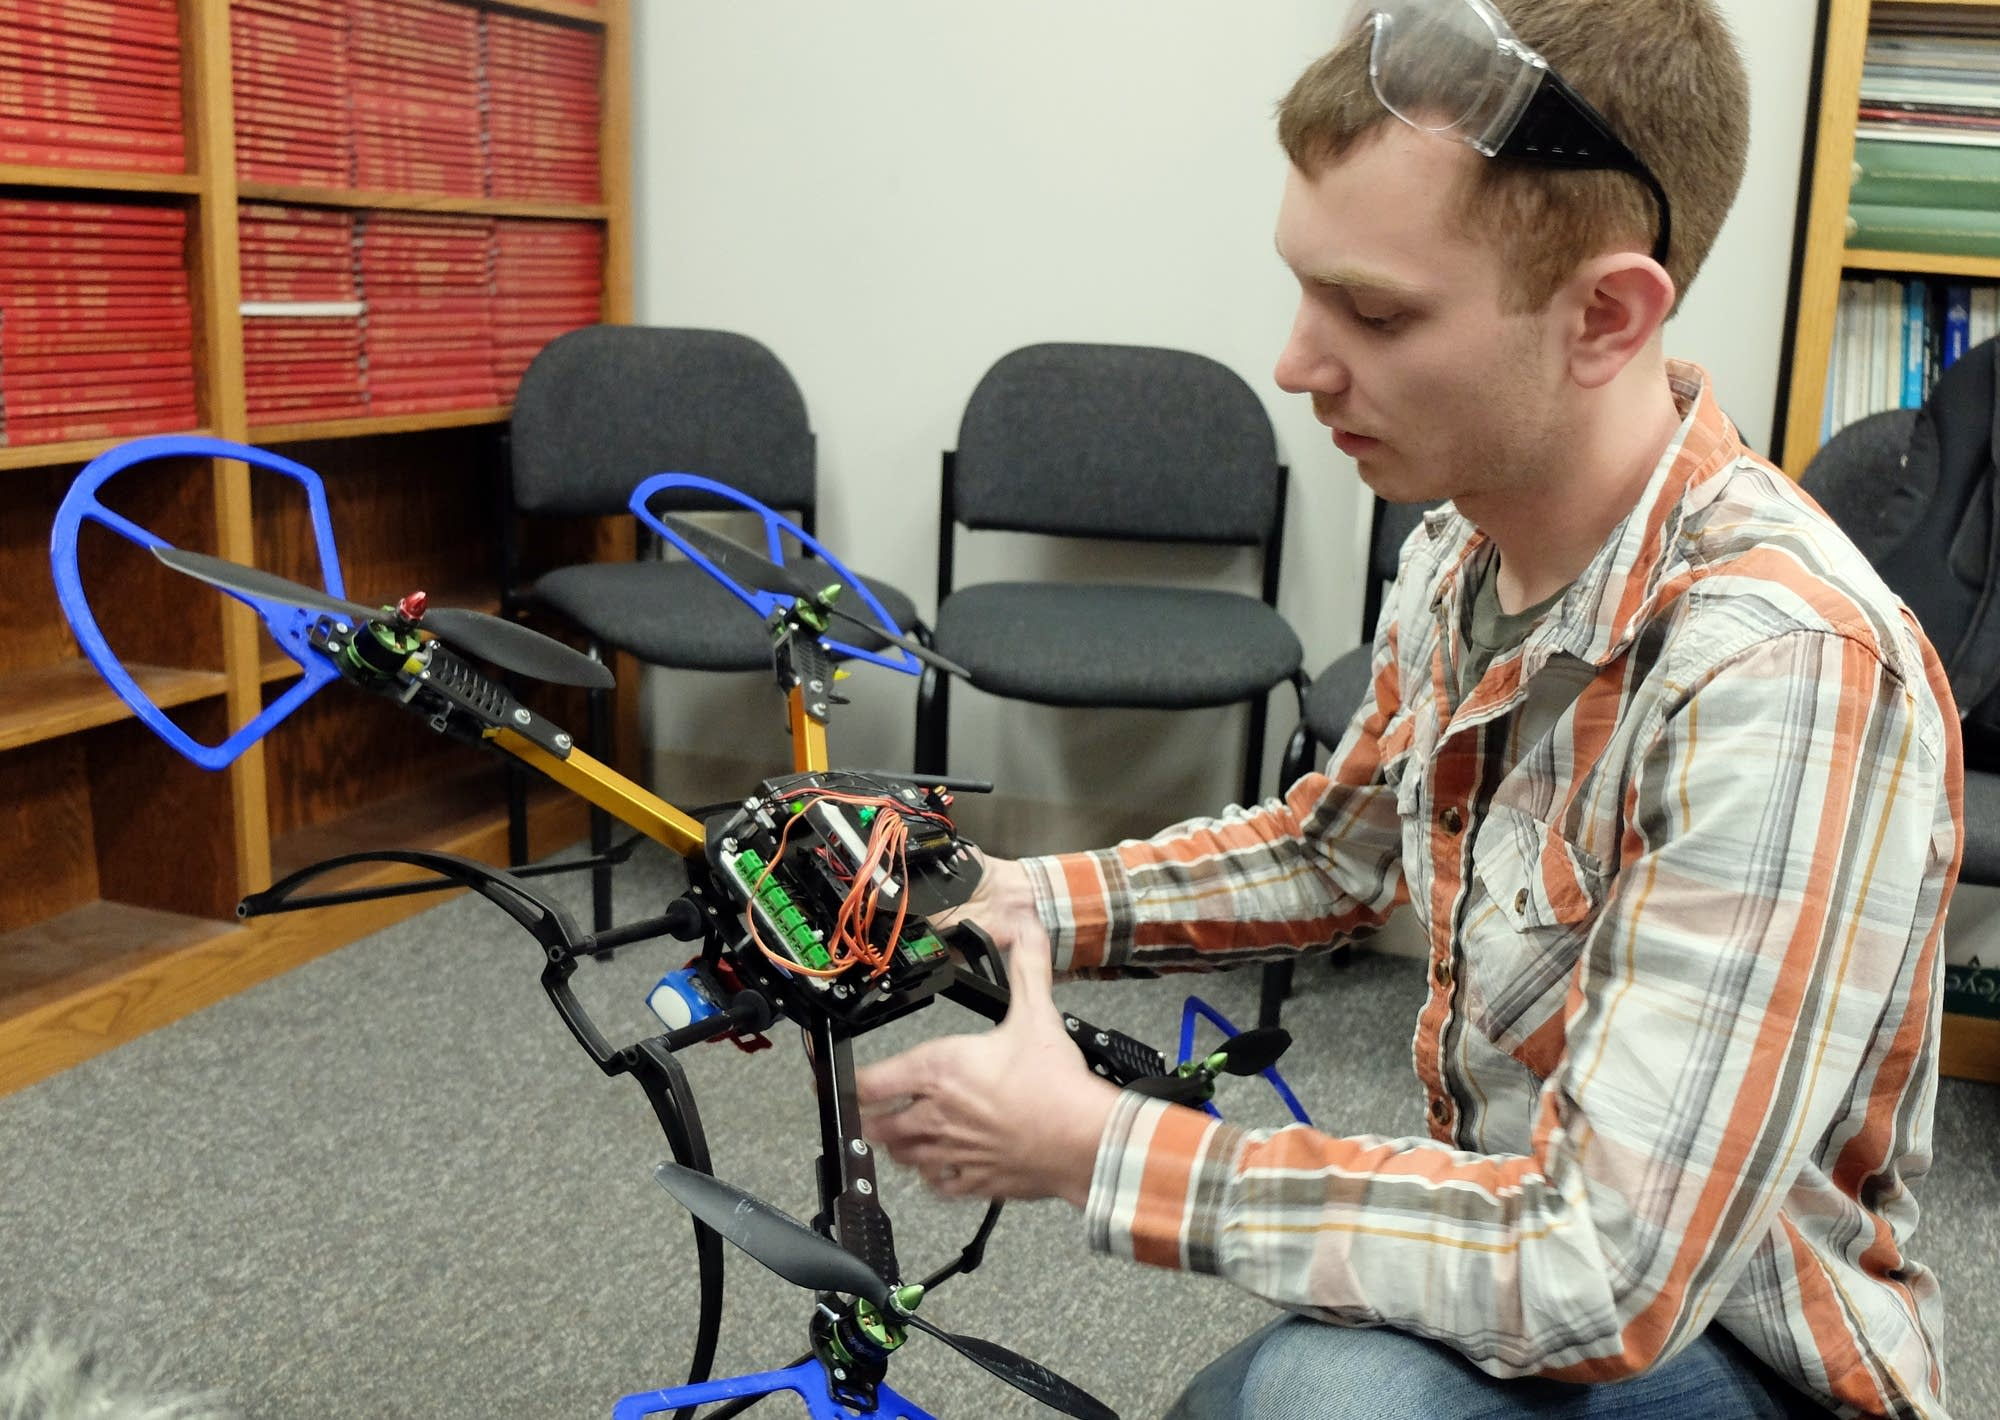 NDSU engineering student Brady Goenner explains the design of a drone.